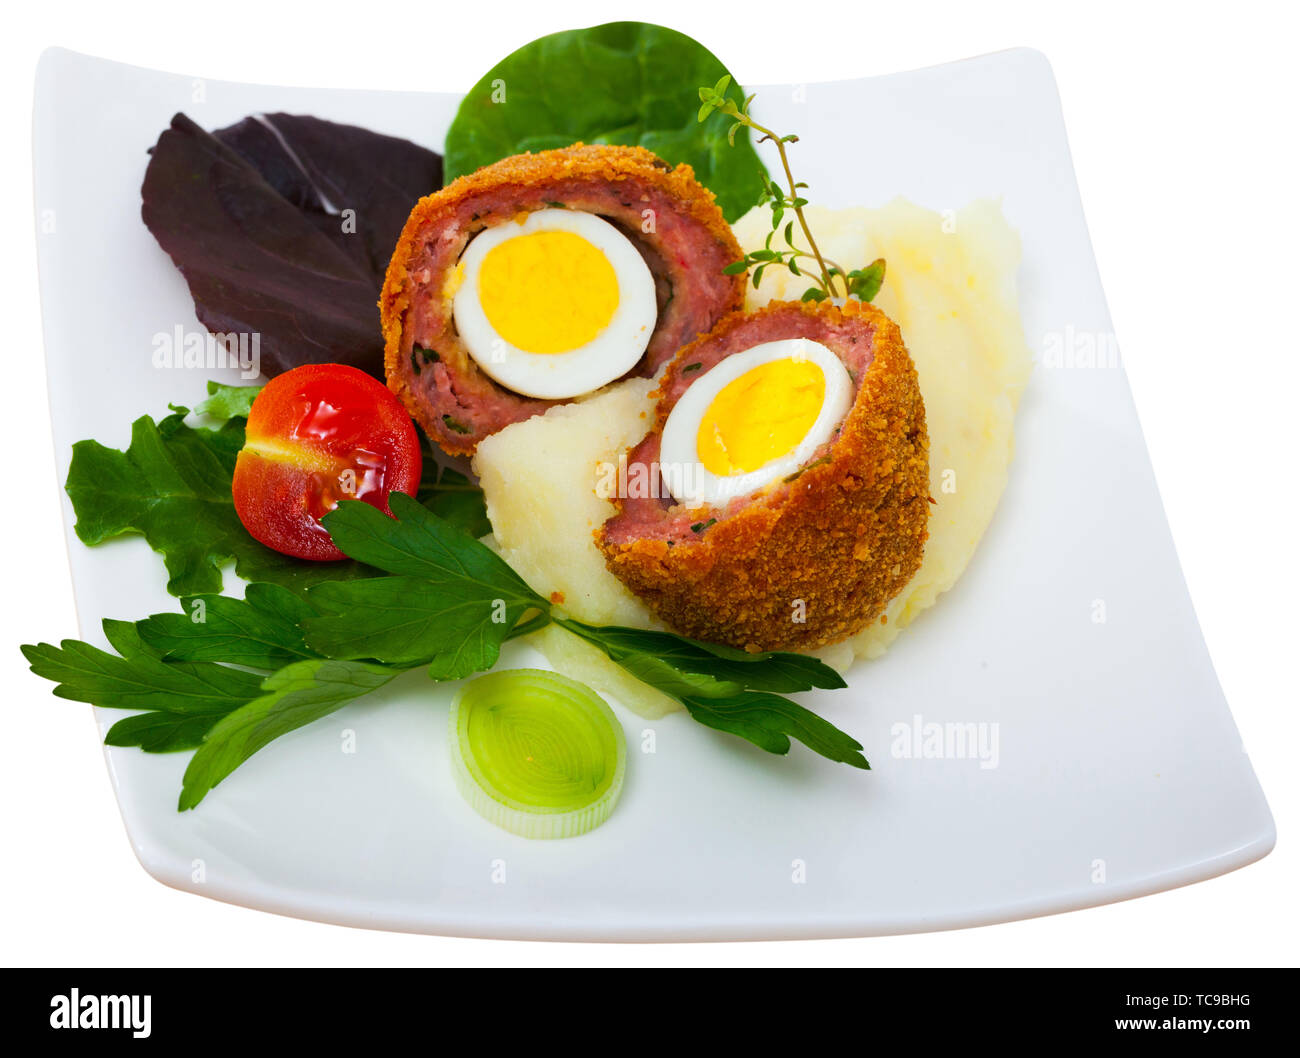 Hard-boiled quail egg wrapped in sausage meat, breaded and fried (Scotch egg) served with pureed potatoes, baked carrots, cherry tomatoes and greens. - Stock Image